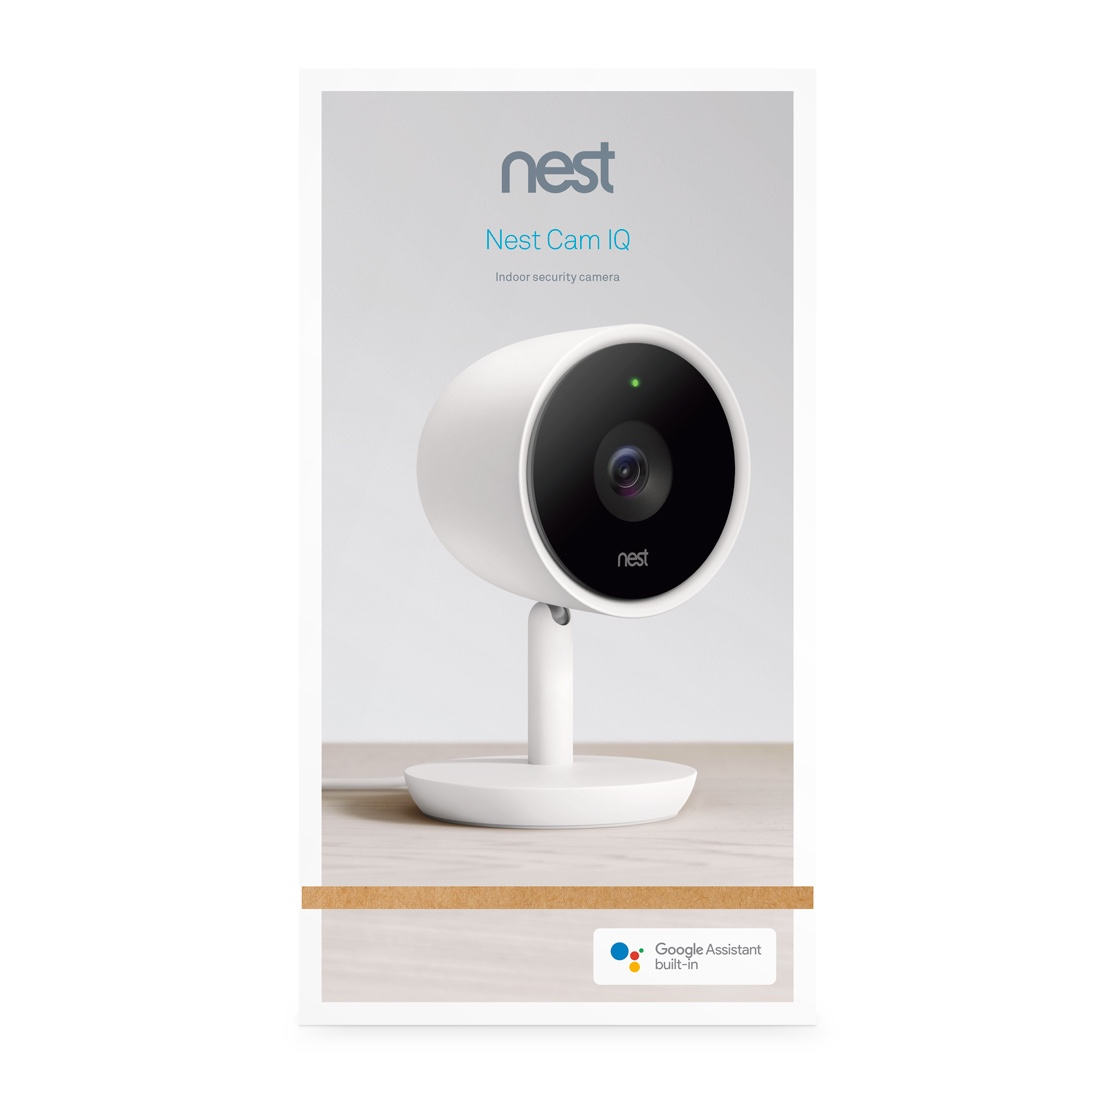 One of the best things about Nest products is that they continue to get better through over-the-air software updates. So we're excited to give customers the ability to add the Google Assistant to Nest Cam IQ indoor, more intelligent activity zones to Nest Aware, and more flexibility with a 5-day Nest Aware subscription plan.